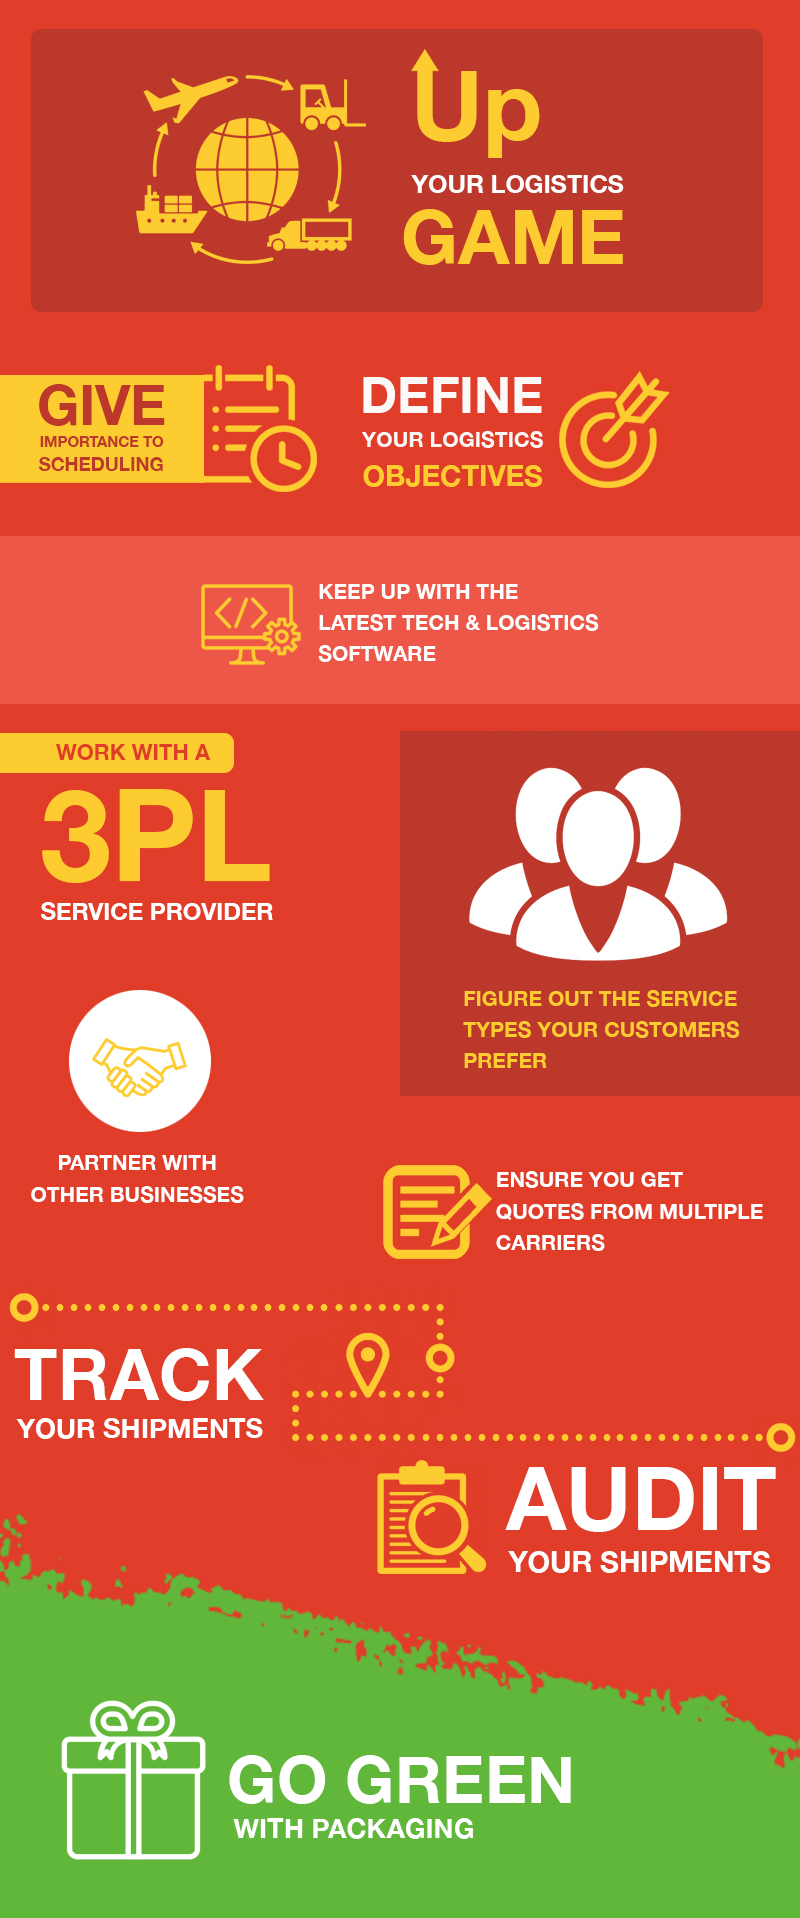 Infographic of some logistics best practices